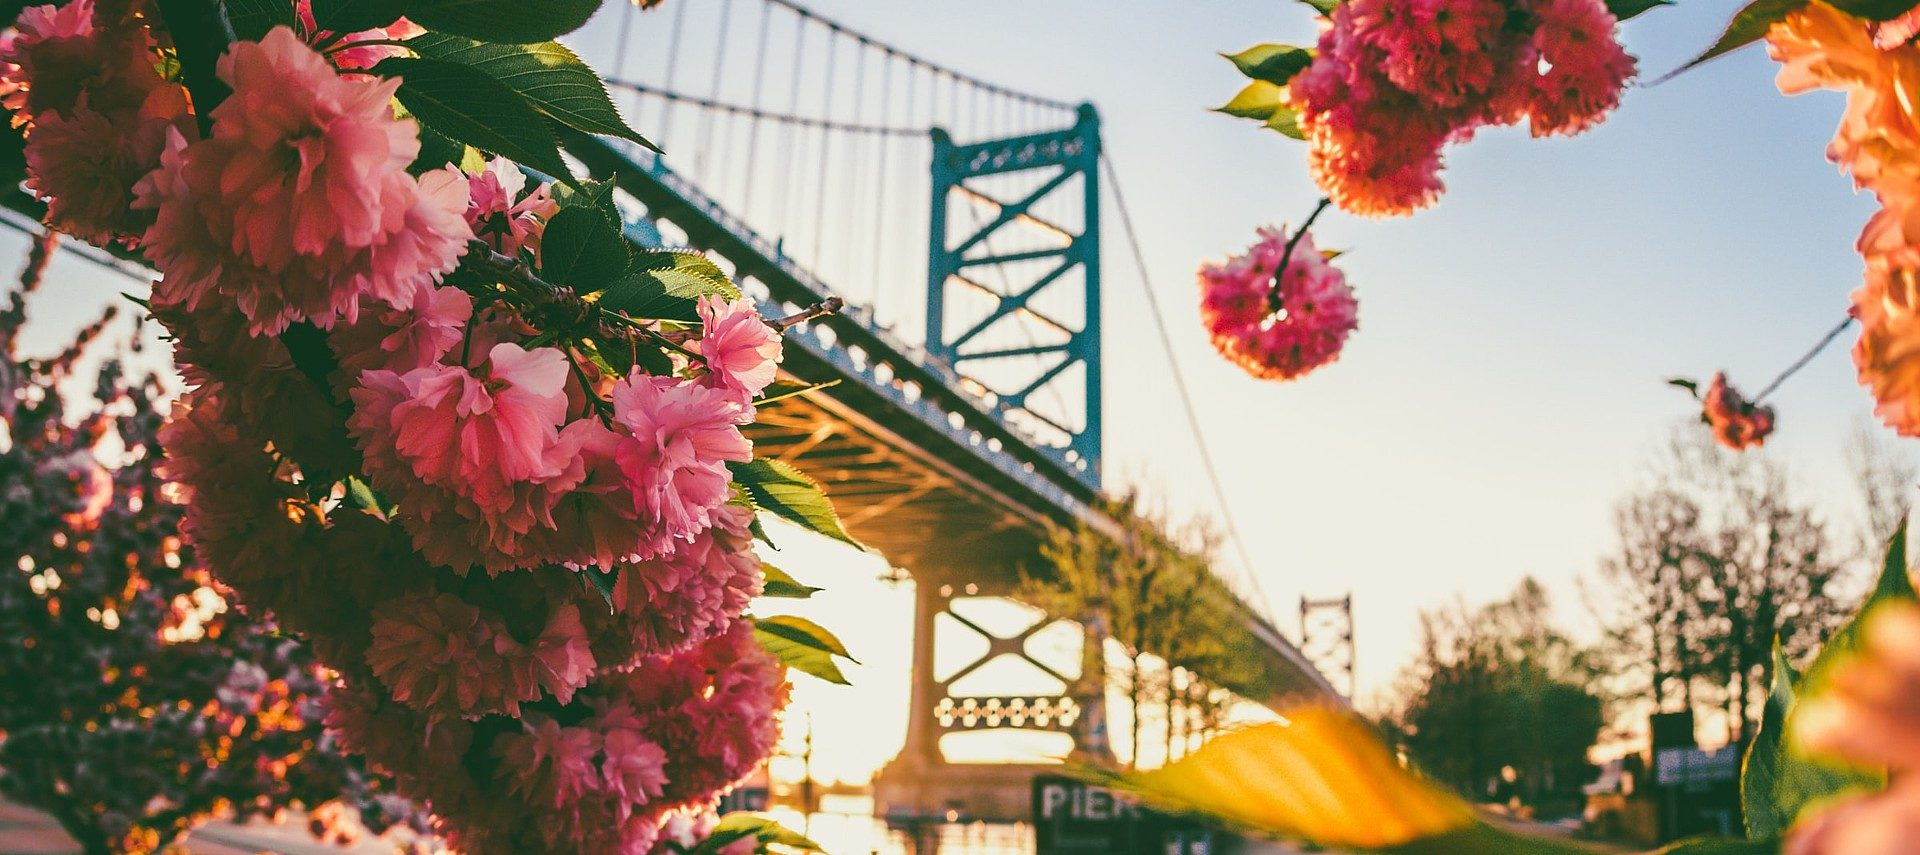 Large suspension bridge seen through the beautiful pink flowers of a tree